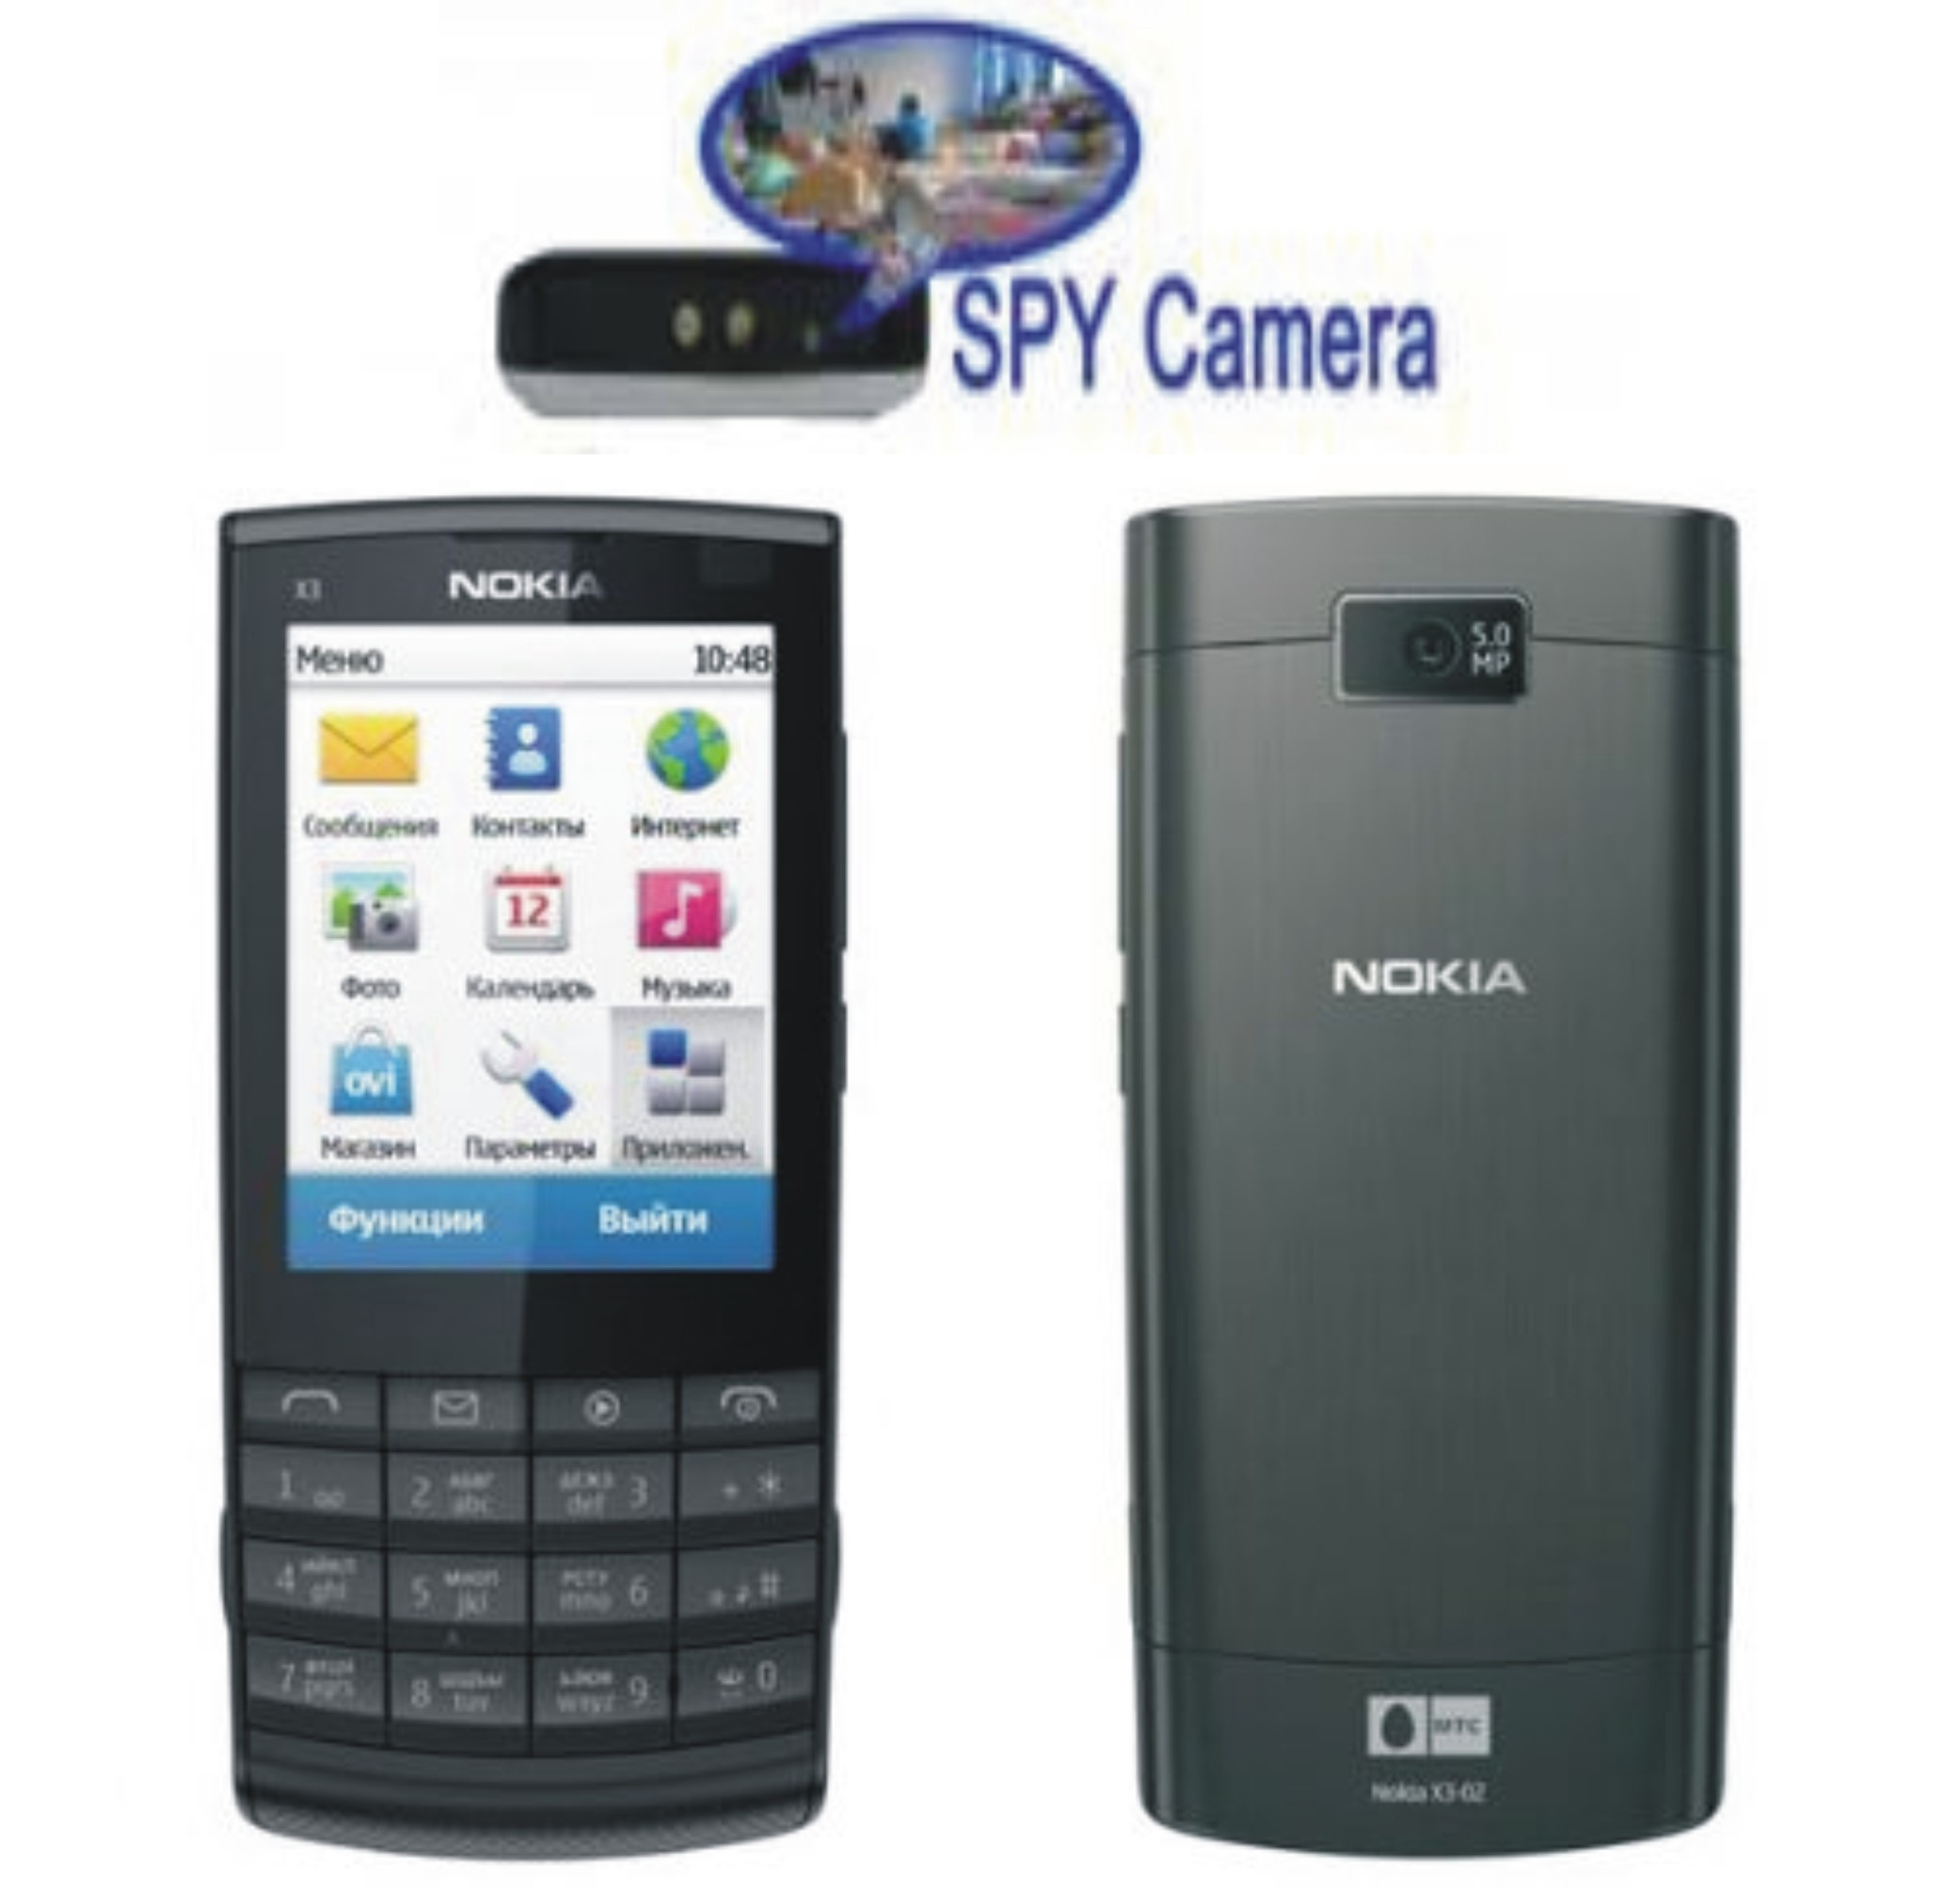 Spy Camera In Nokia Phone Touch Screen In Jamshedpur